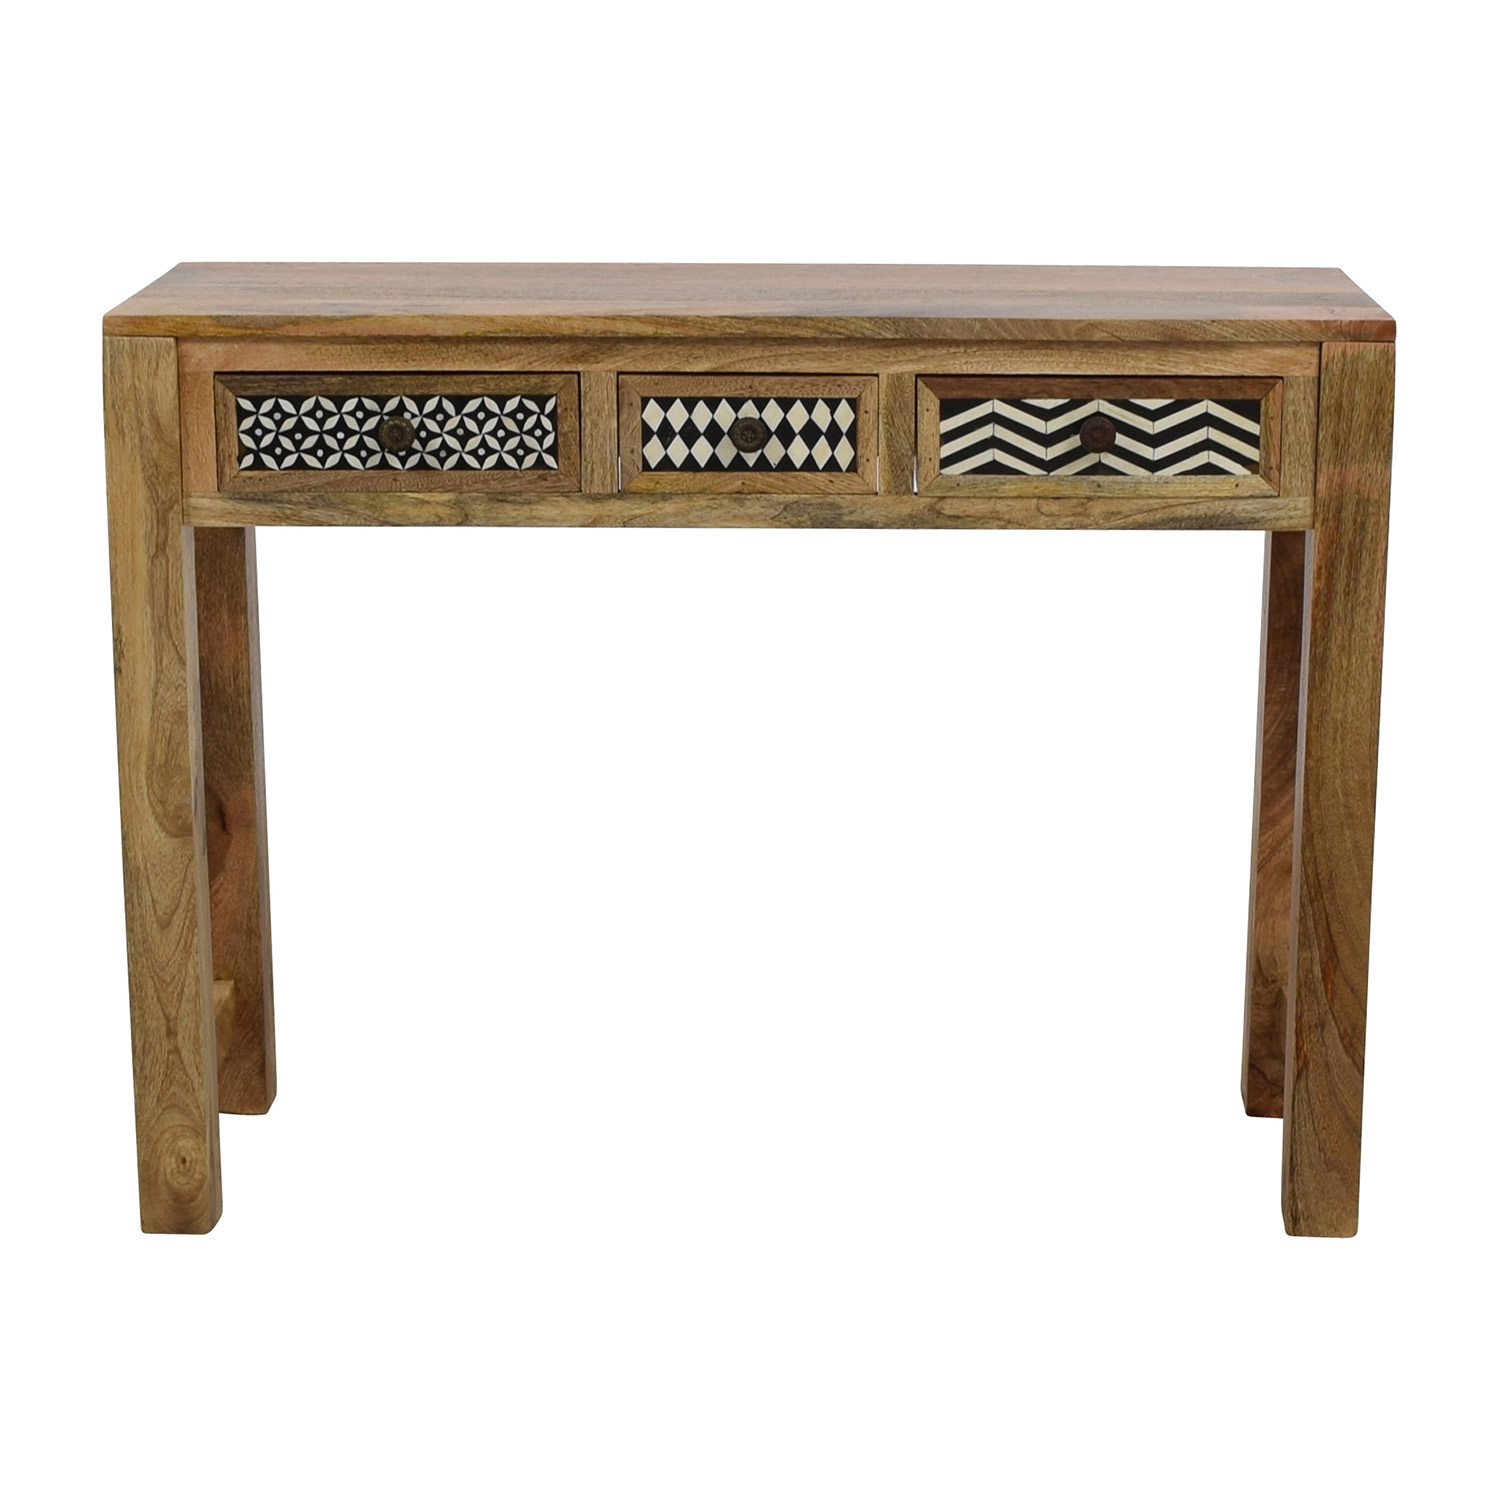 shop Natural Wood Table with Patterned Drawers online